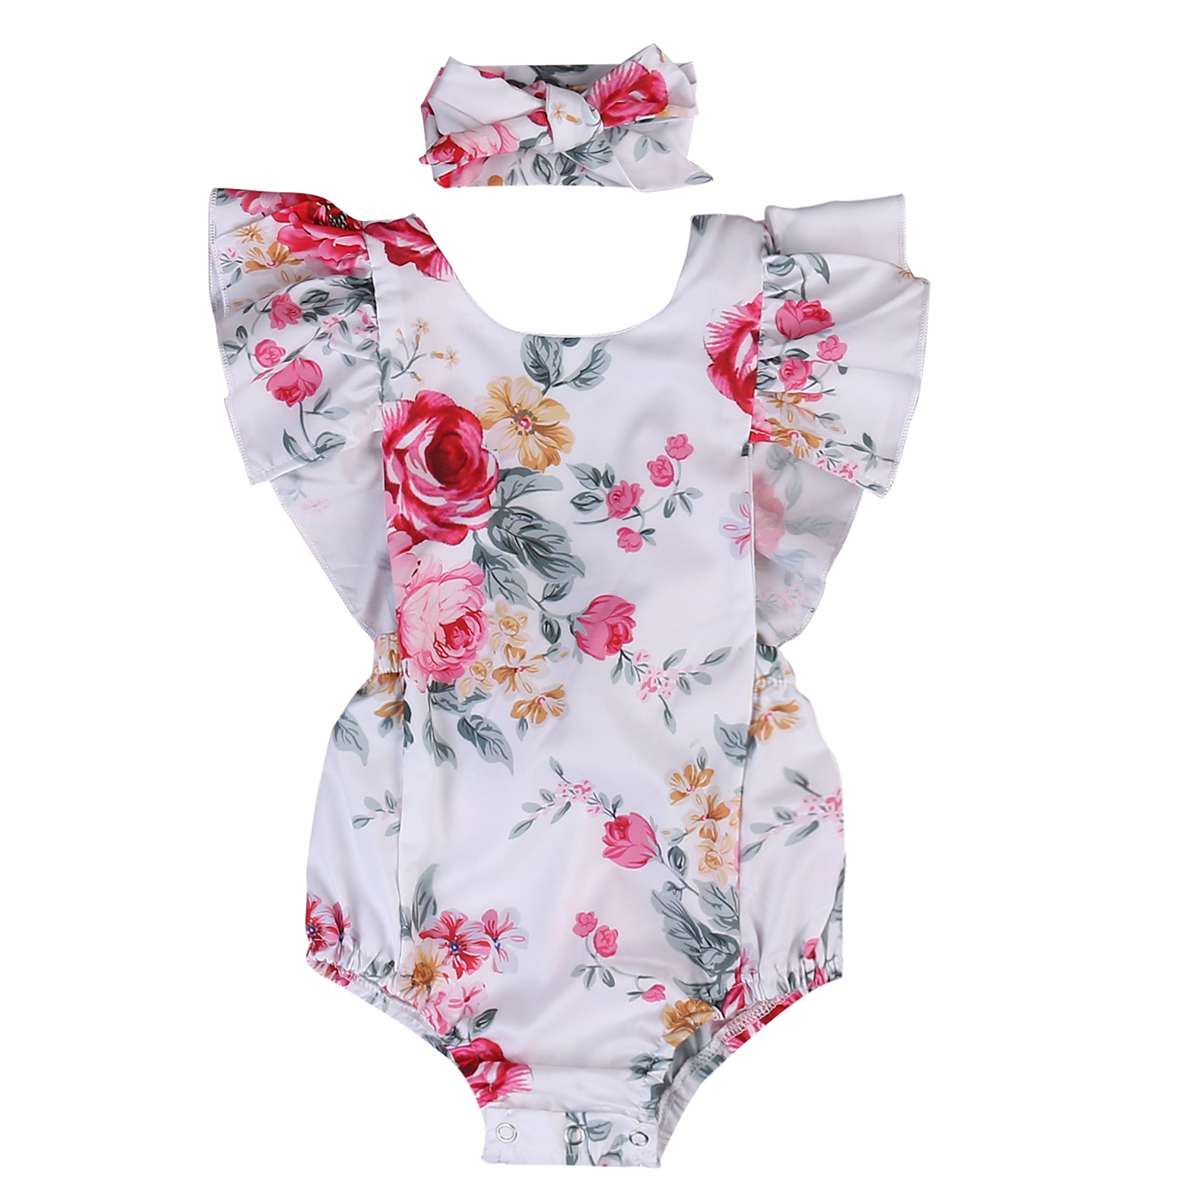 Summer 2017 Floral Newborn Baby Girl Ruffle Romper Backless Jumpsuit One Piece Sunsuit Clothes 0 ...